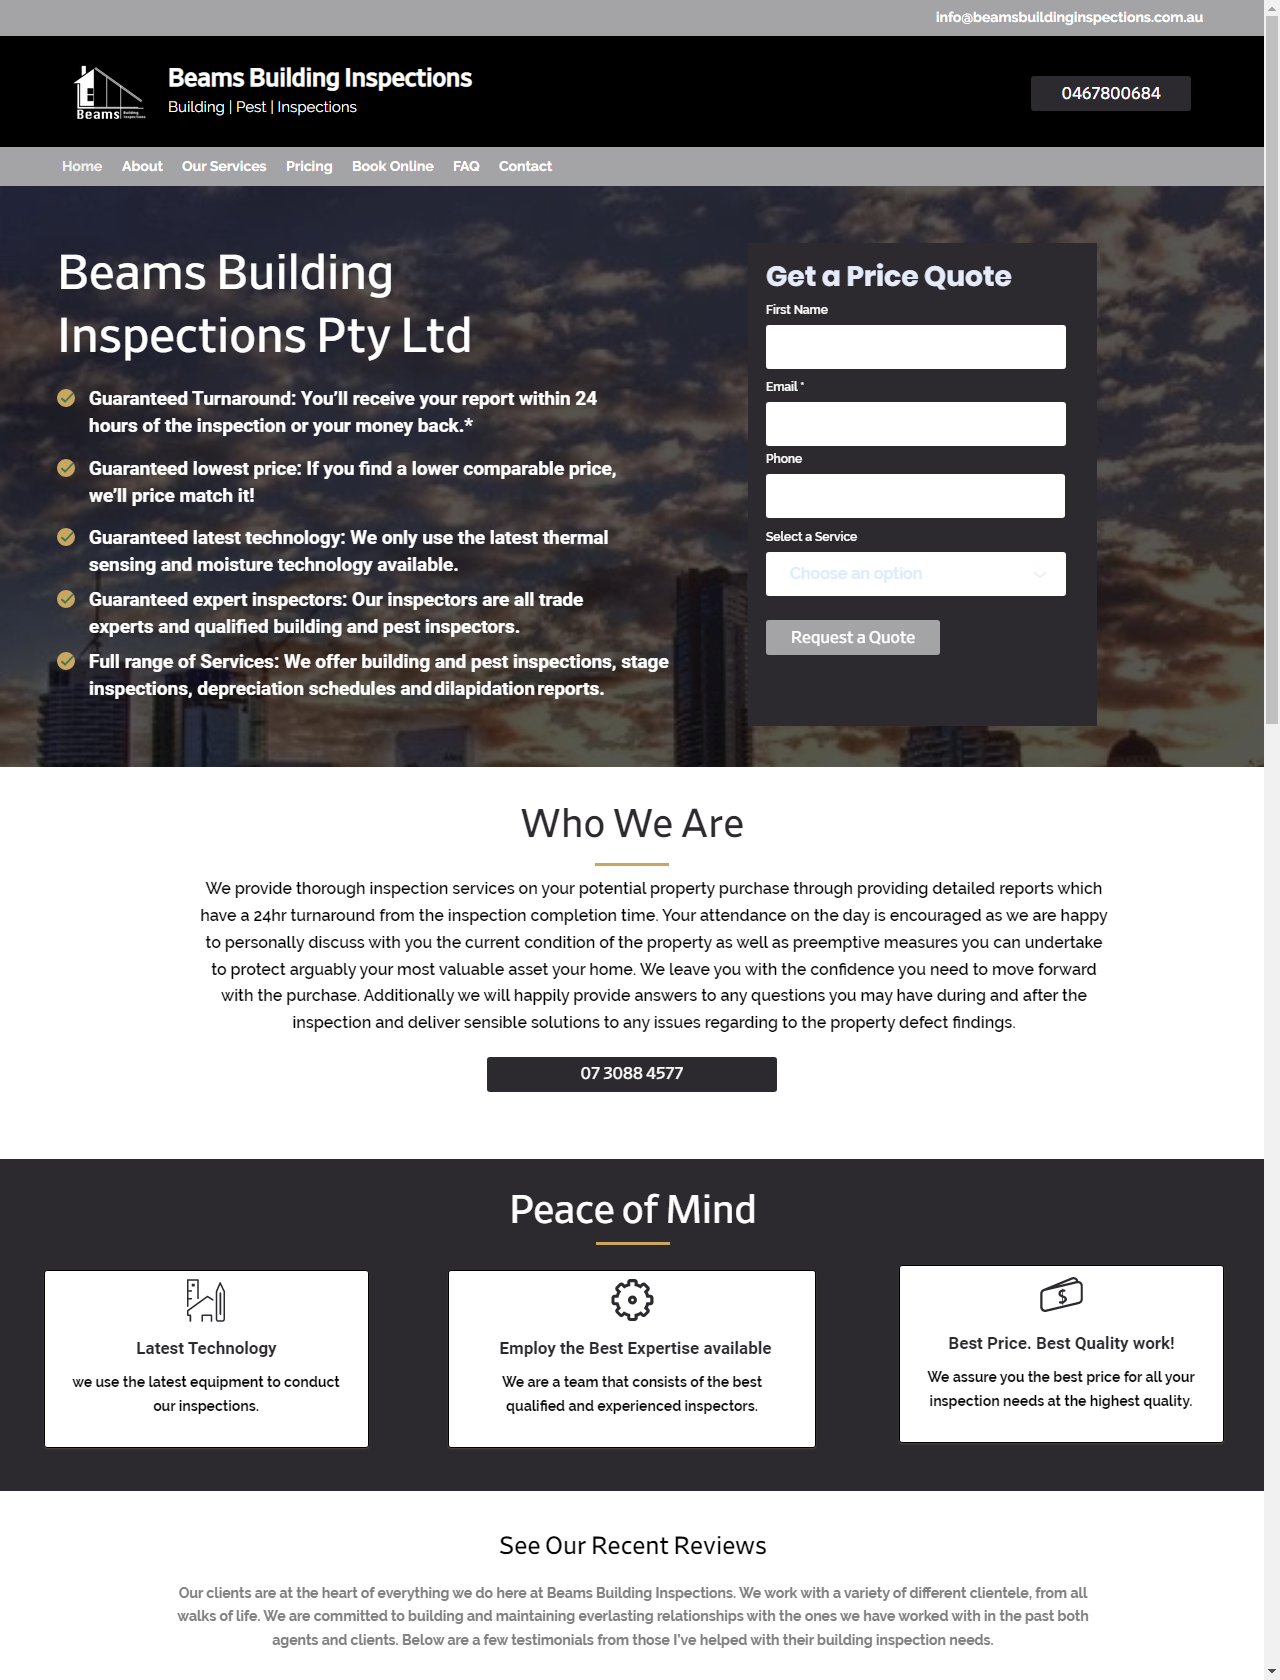 Screenshot Desktop - https://beamsbuildinginspections.com.au/